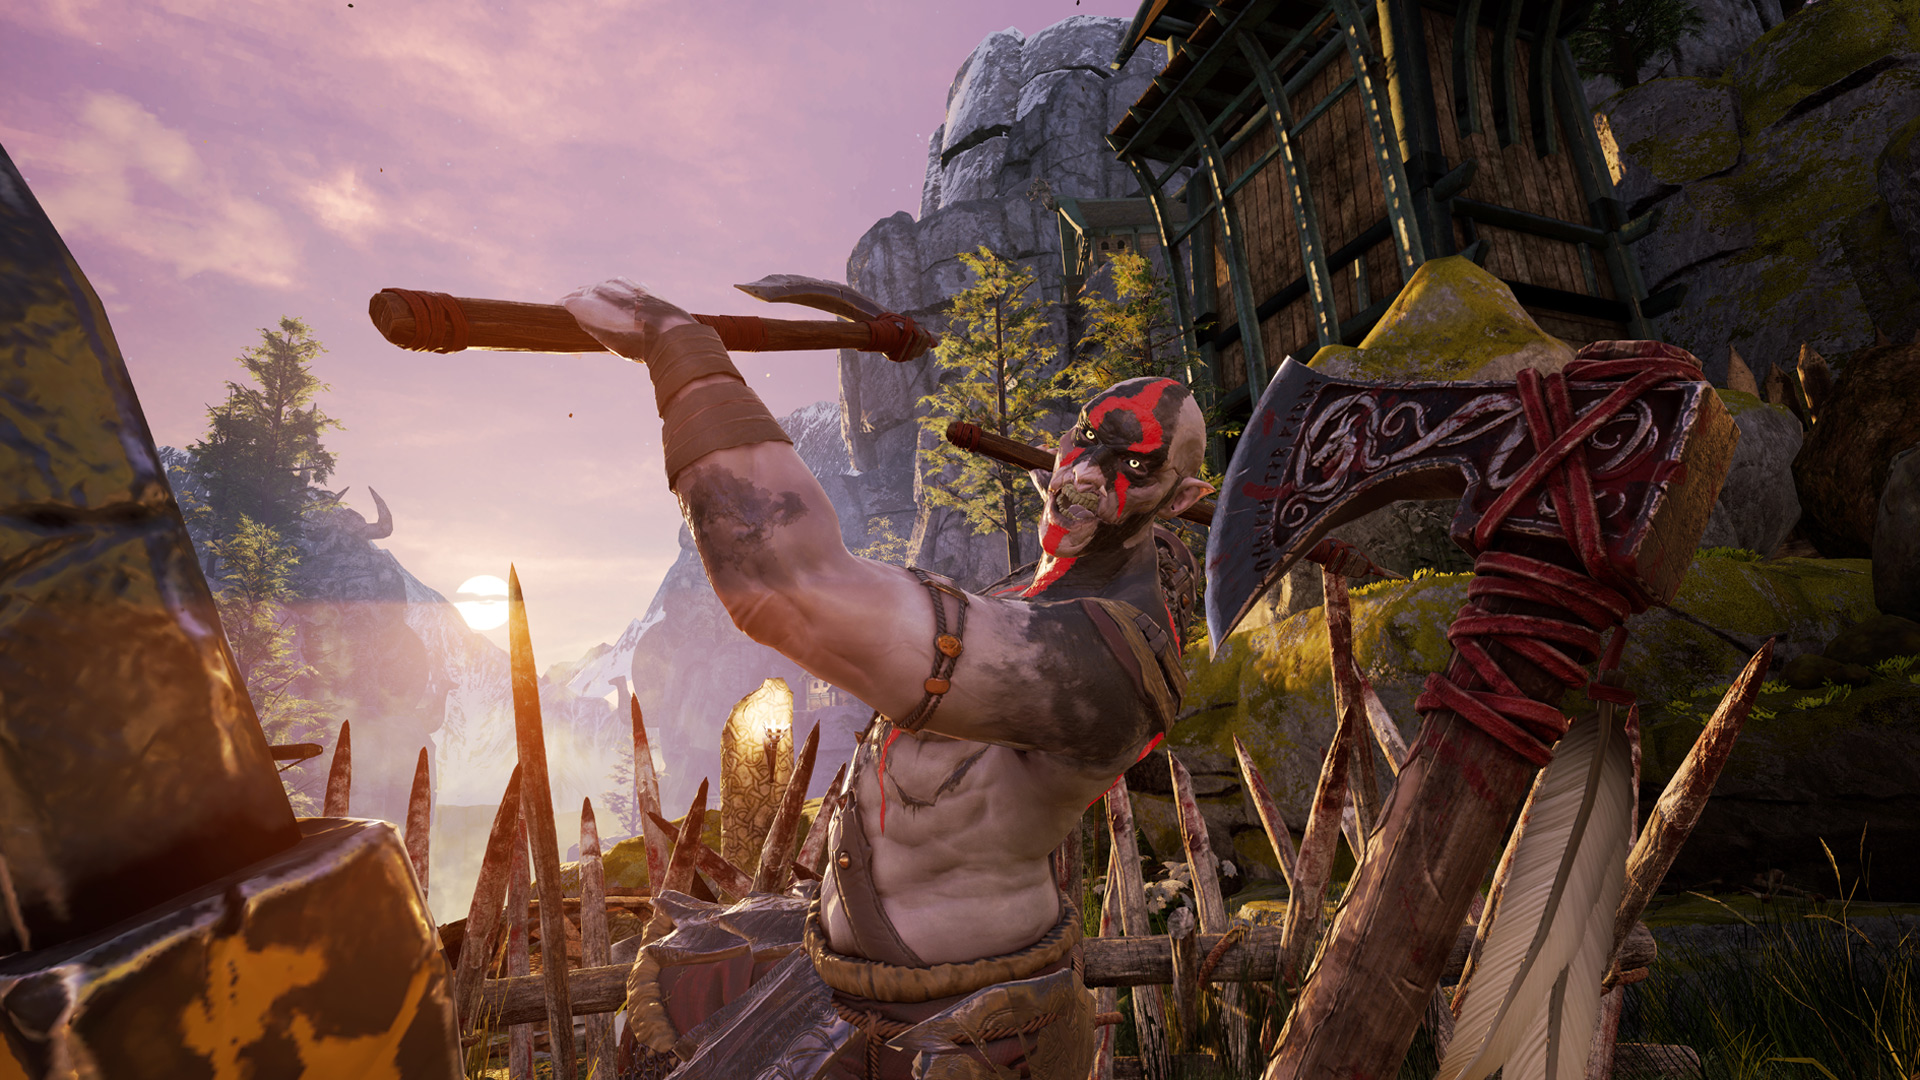 Oculus Unveils Viking Melee Adventure 'Asgard's Wrath' for Rift, Trailer Here